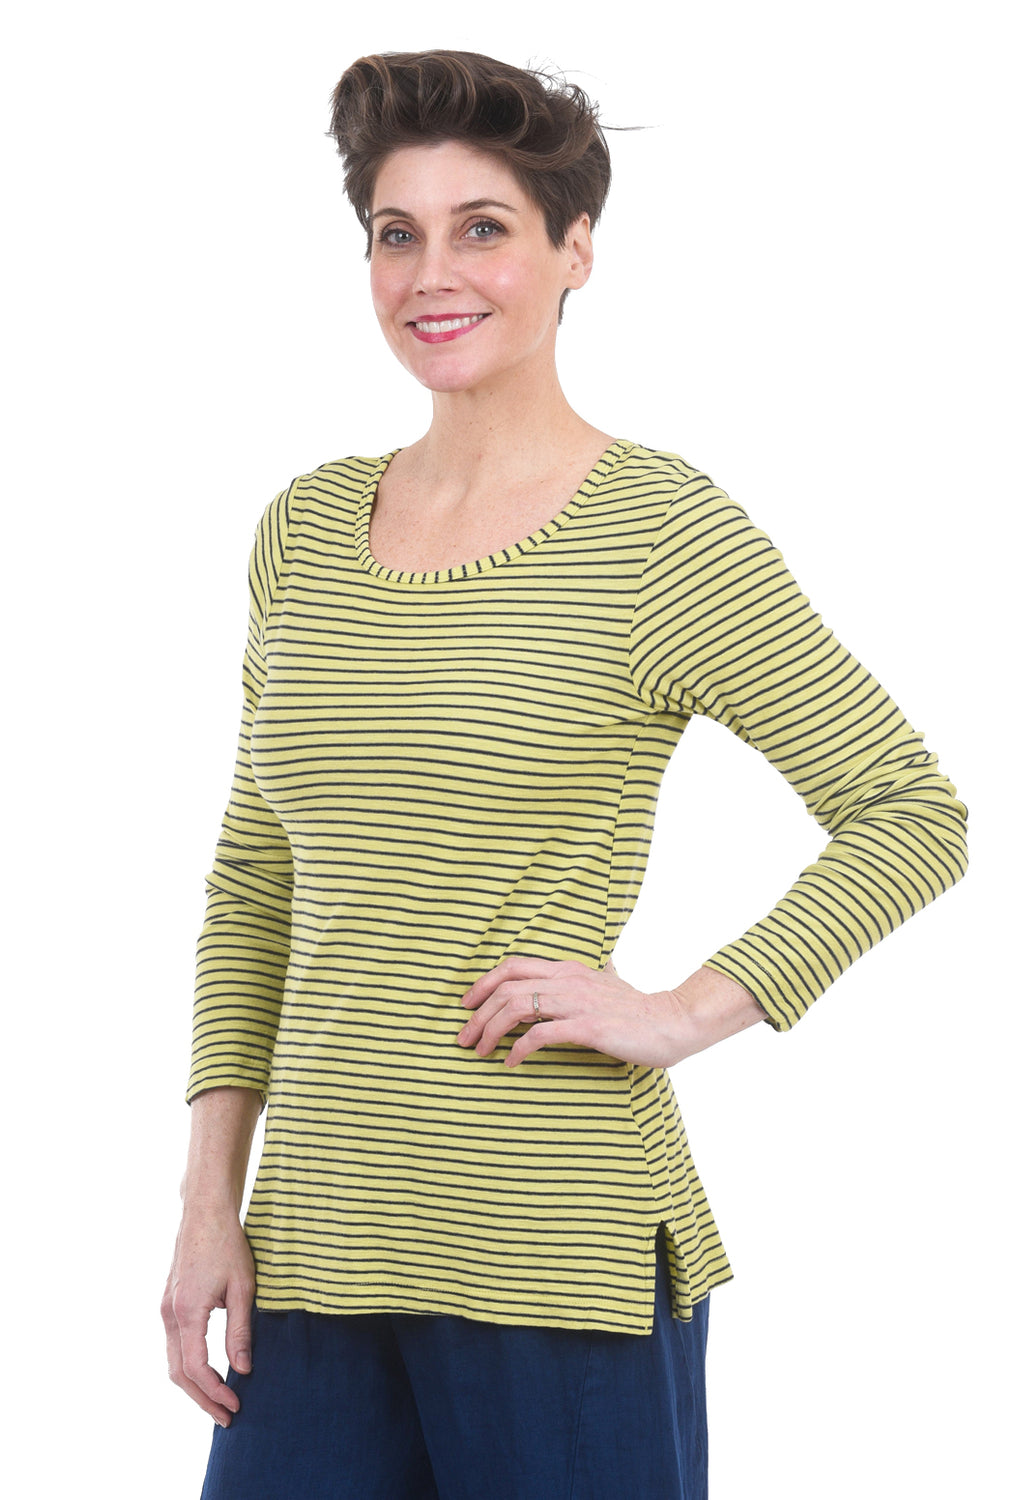 Fenini Jaunty Stripes T-Shirt, Lime Green